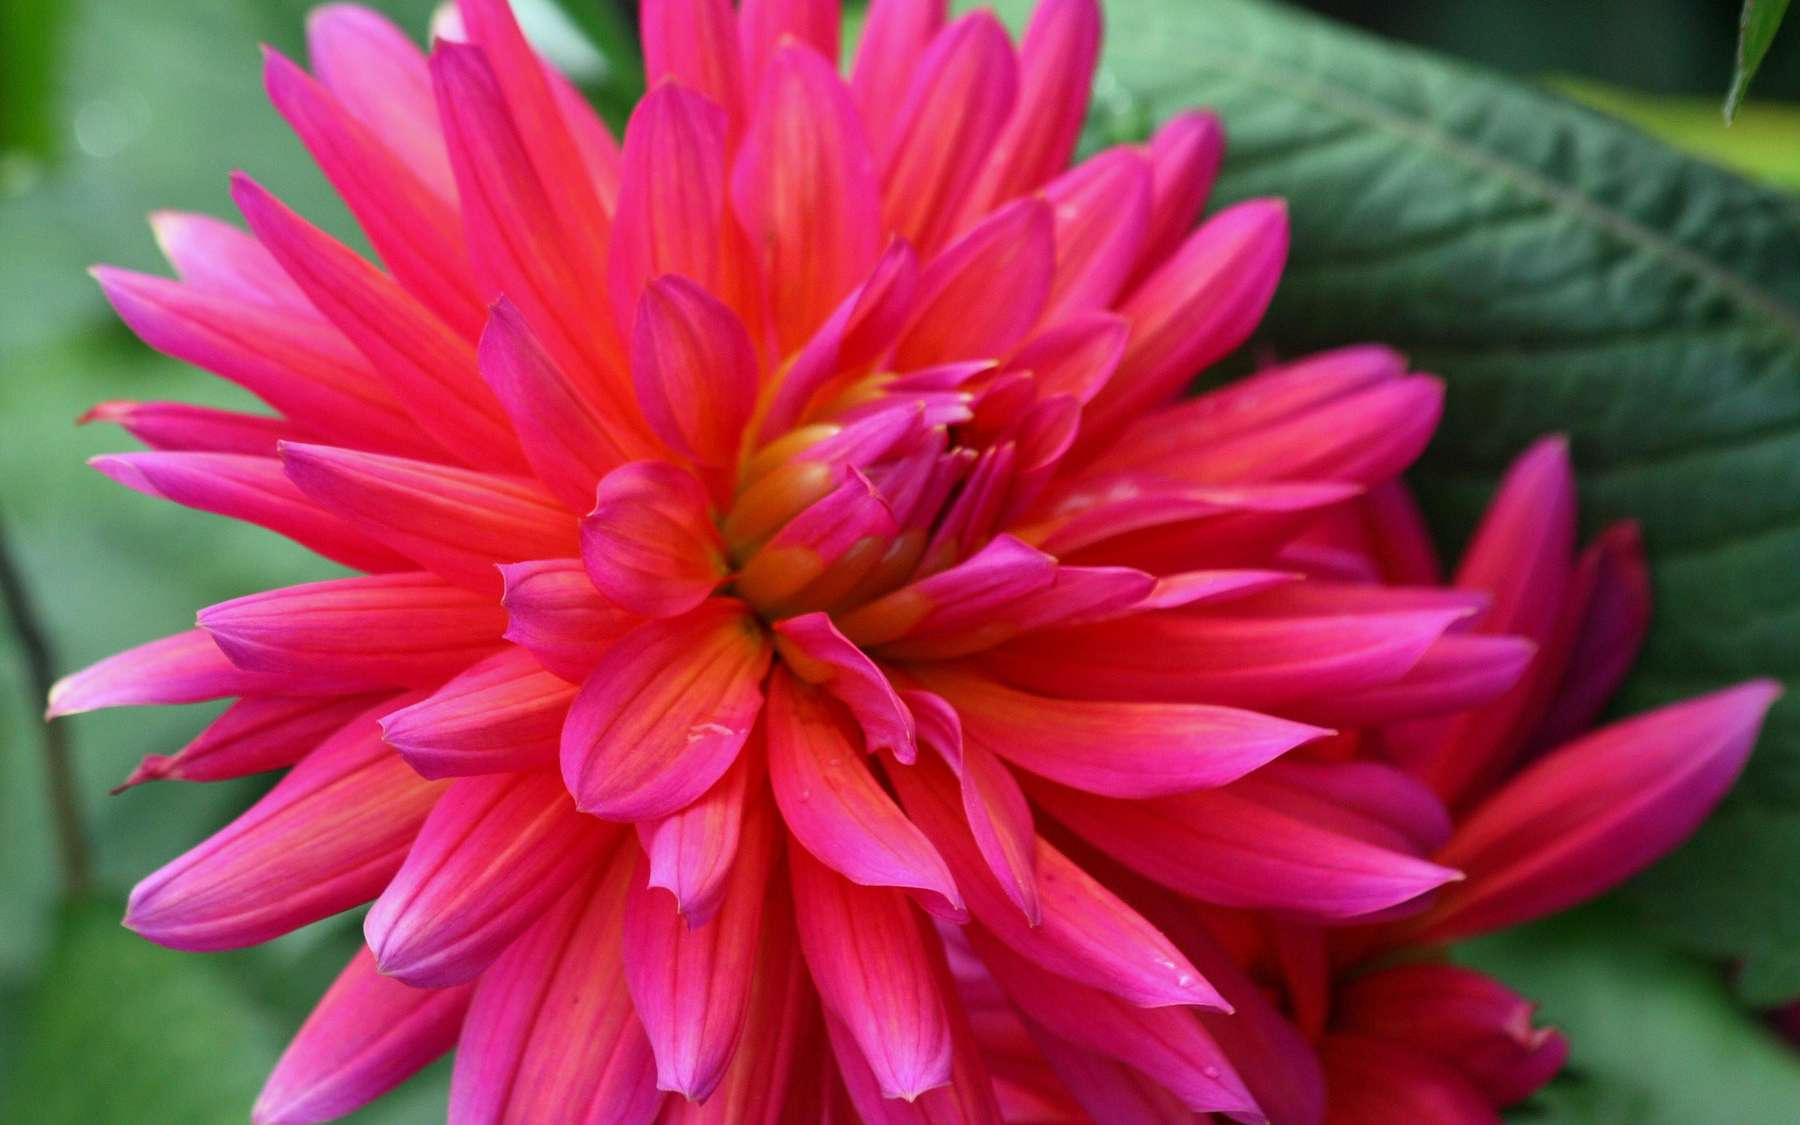 Dahlia Changing Color. © Michel Caron